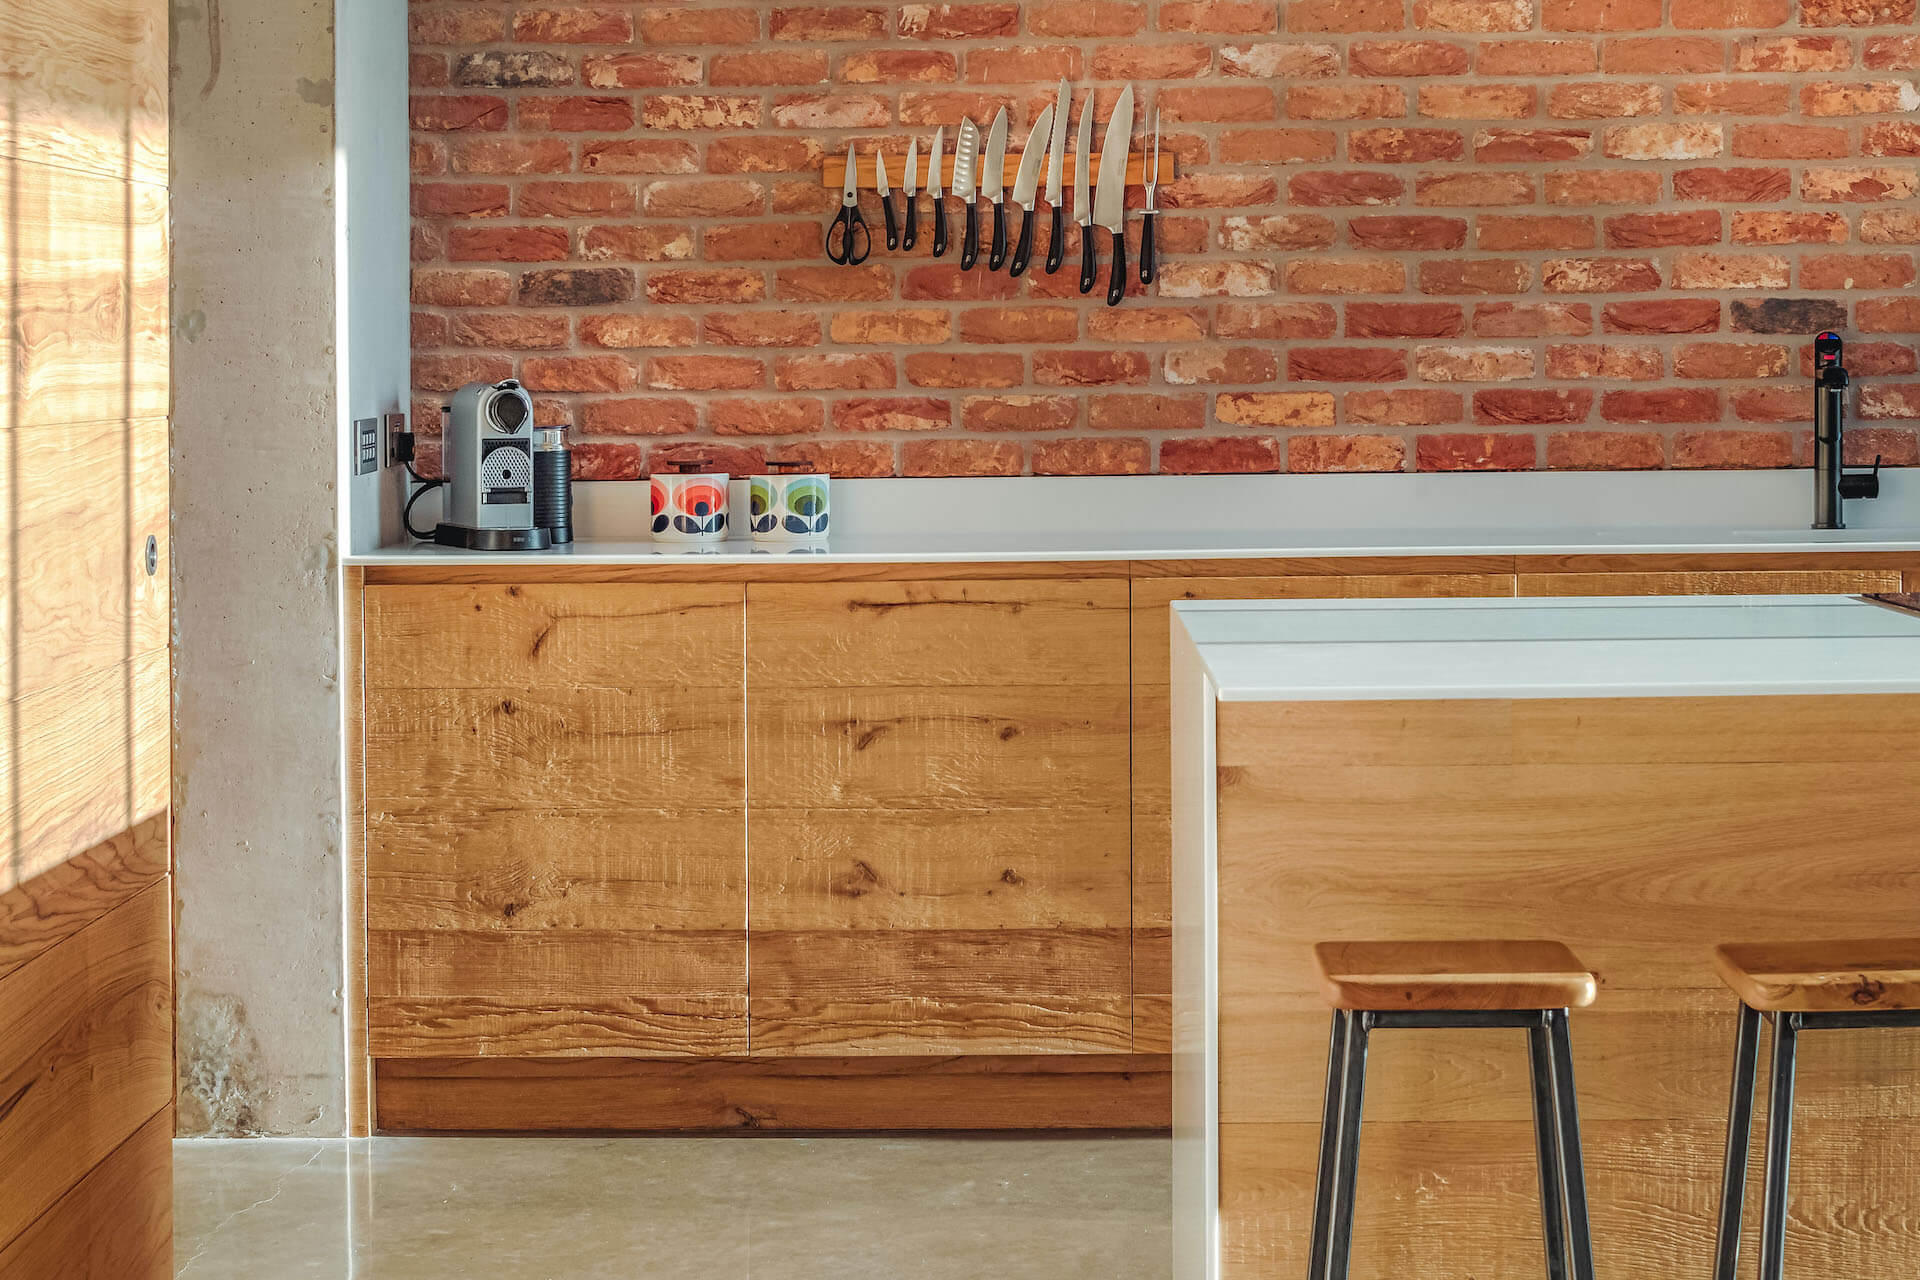 Industrial, reclaimed wood kitchen with concrete and brick from Sustainable kitchens